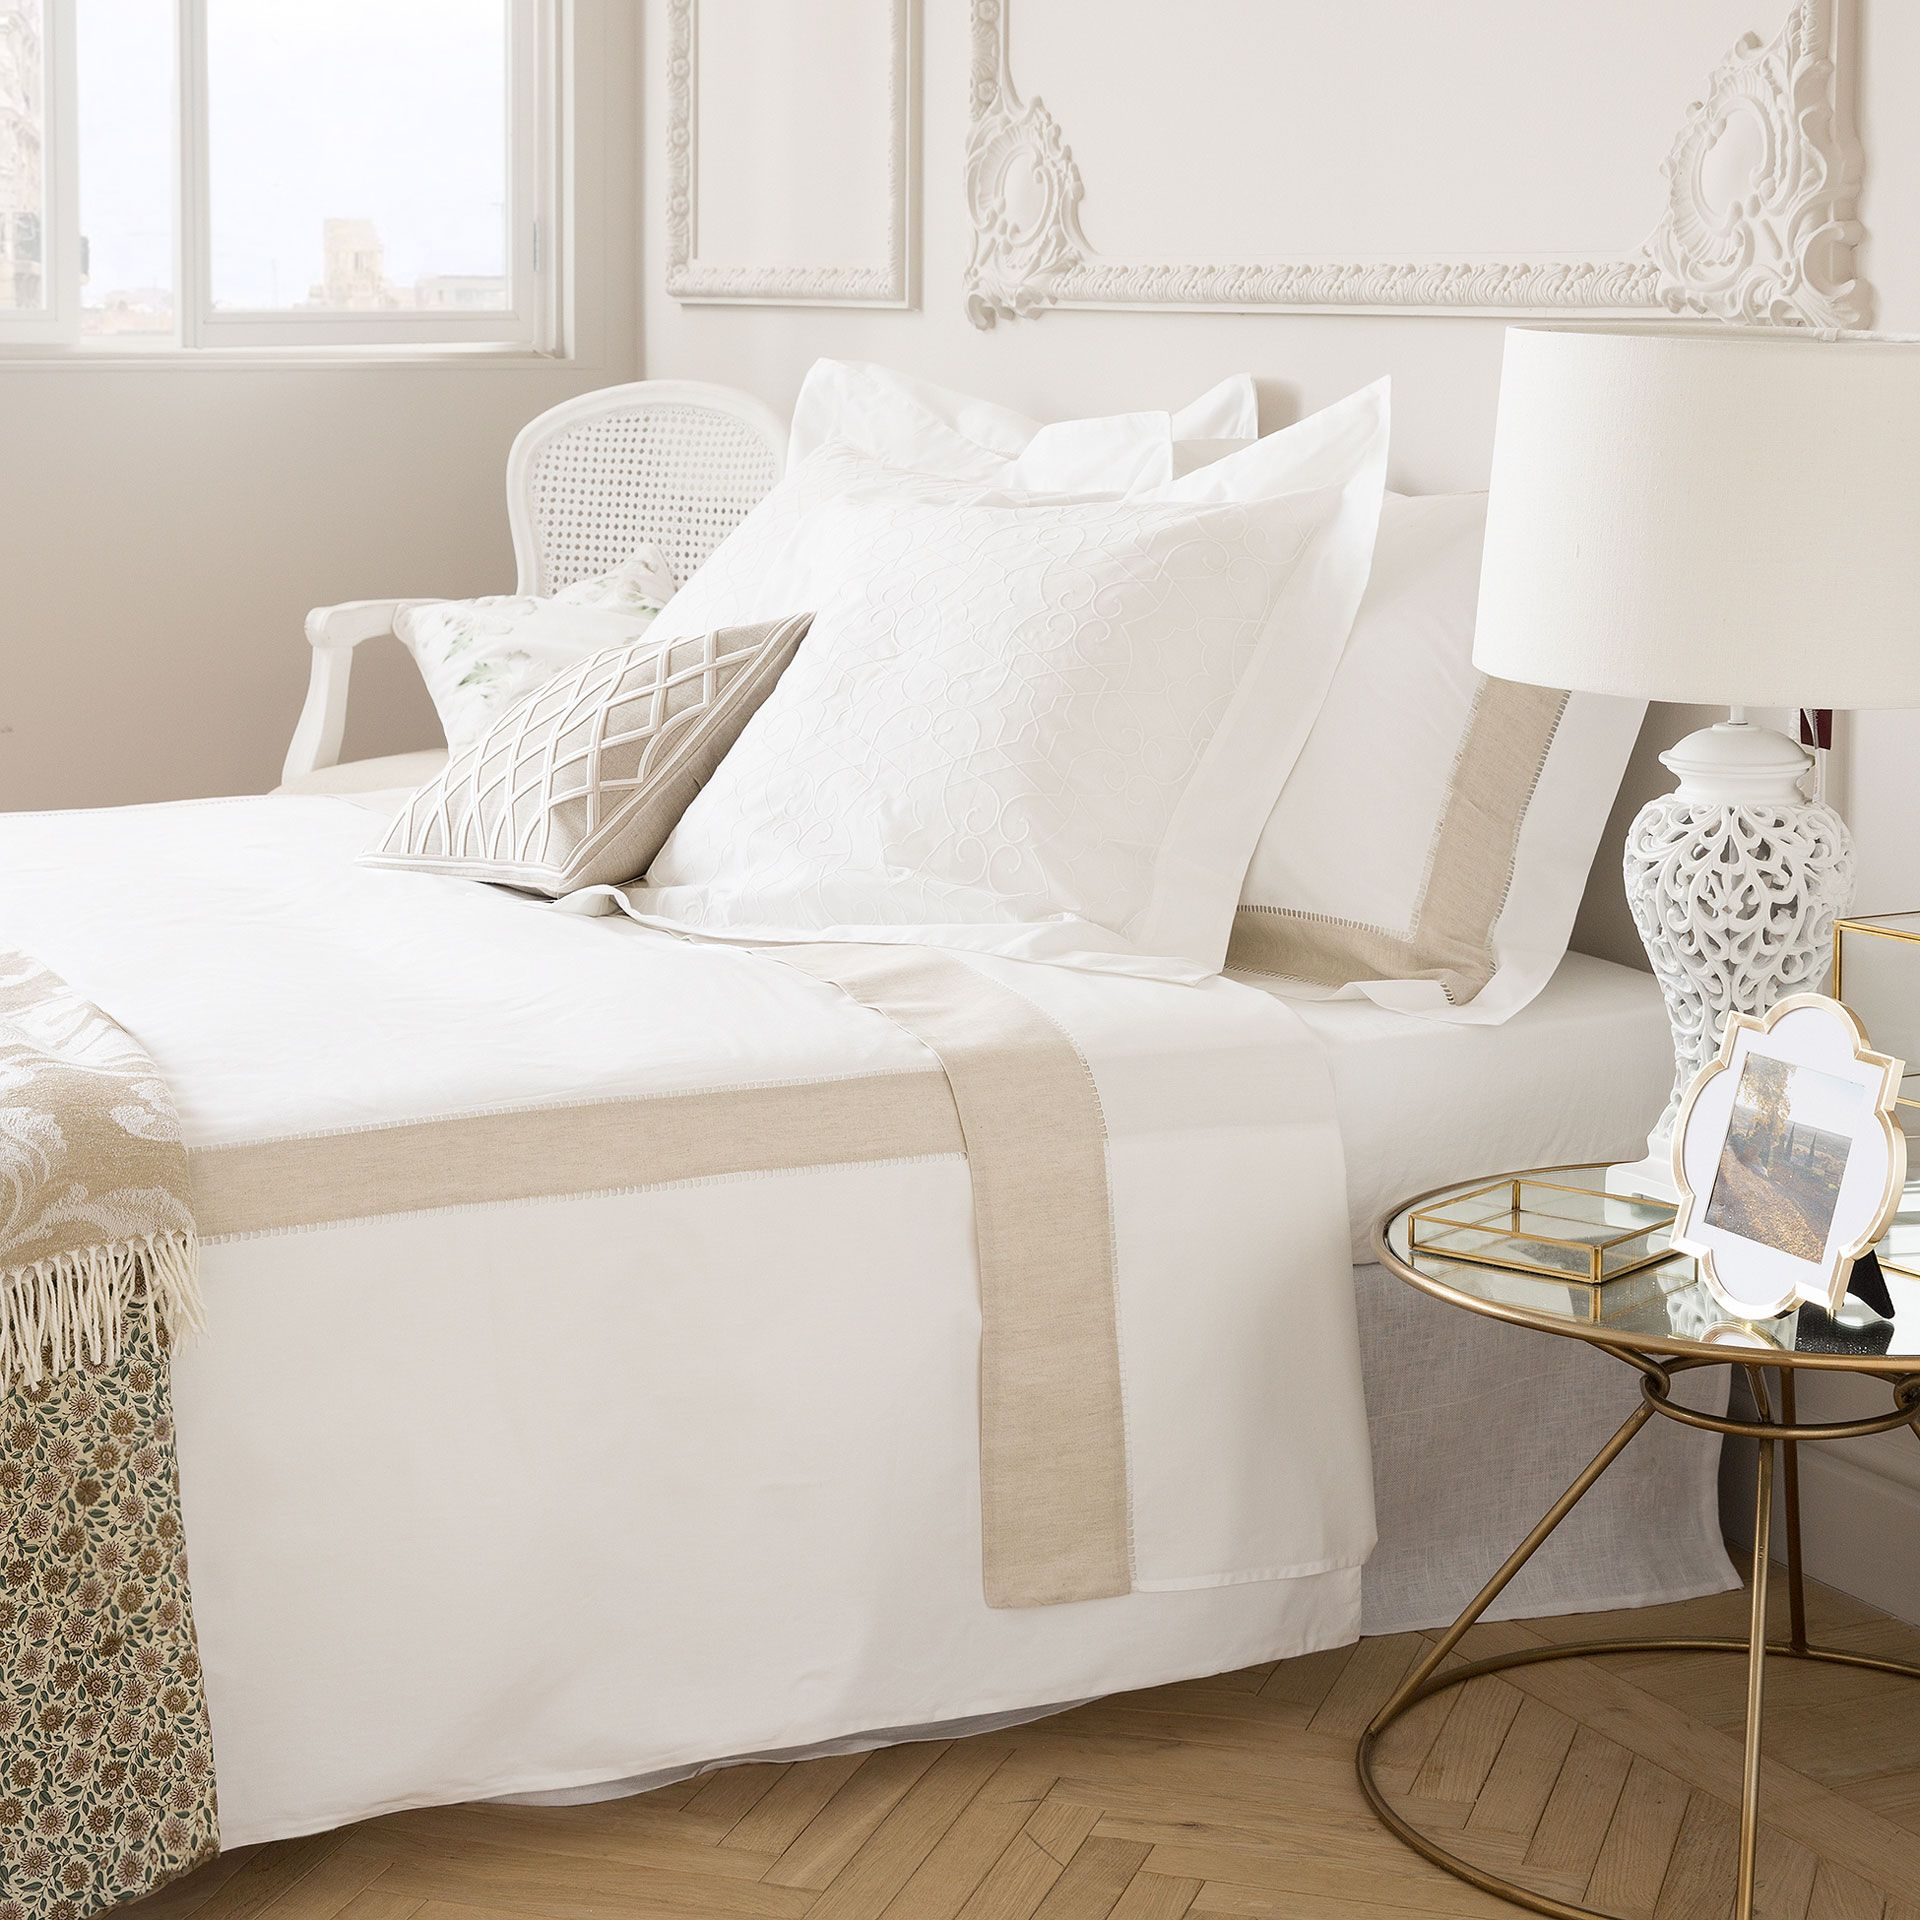 S banas y fundas contraste en lino bed pinterest for Fundas cojines zara home